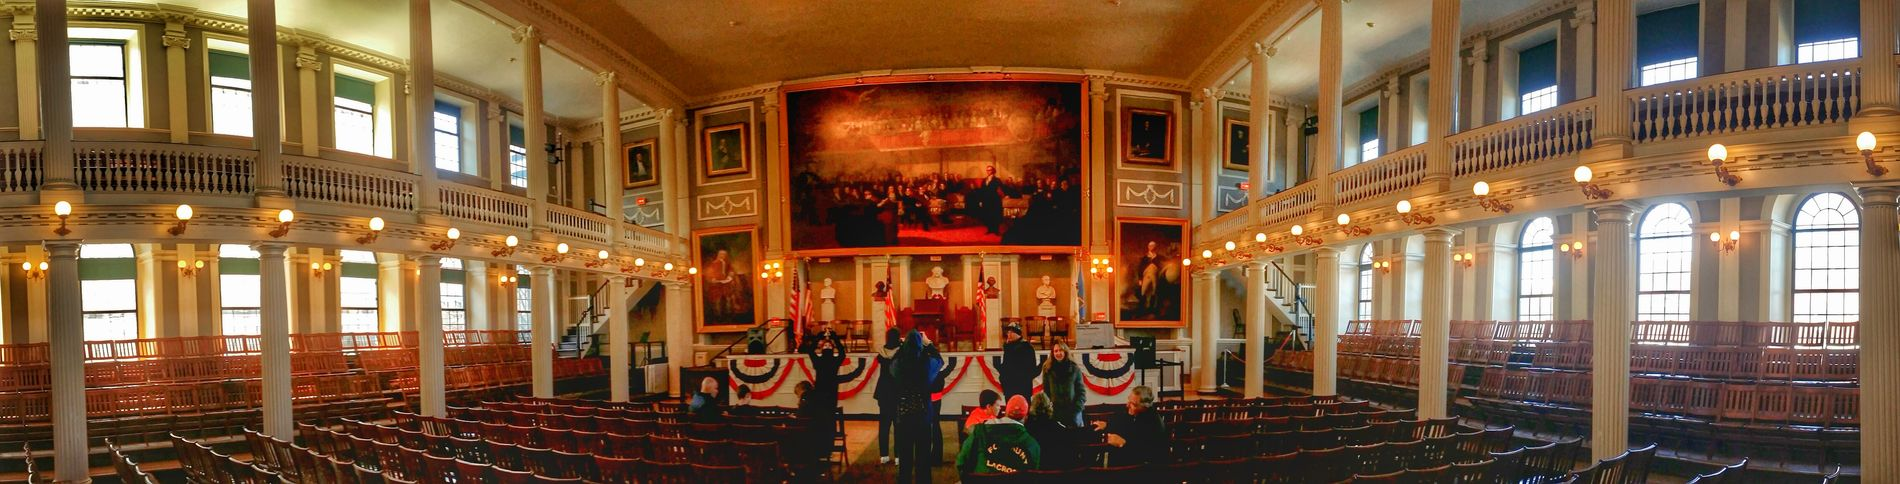 A panoramic of the Great Hall at Faneuil Hall. Important speeches were given here, be sure to check it out on the second floor. Boston Faneuil Hall Being A Tourist